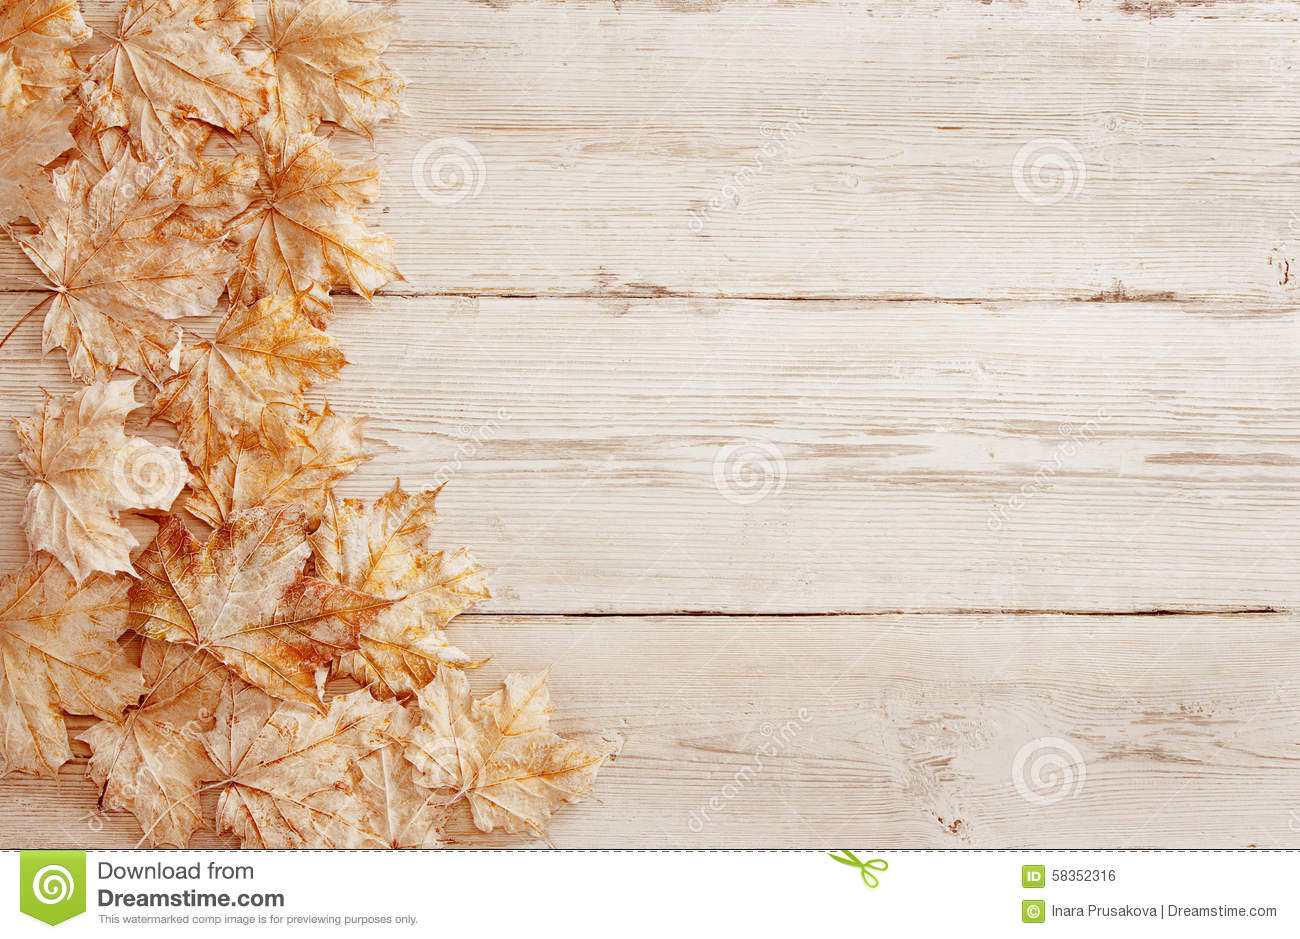 3d Free Fall Nature Wallpaper Wood Background White Leaves Wooden Grain Texture Plank